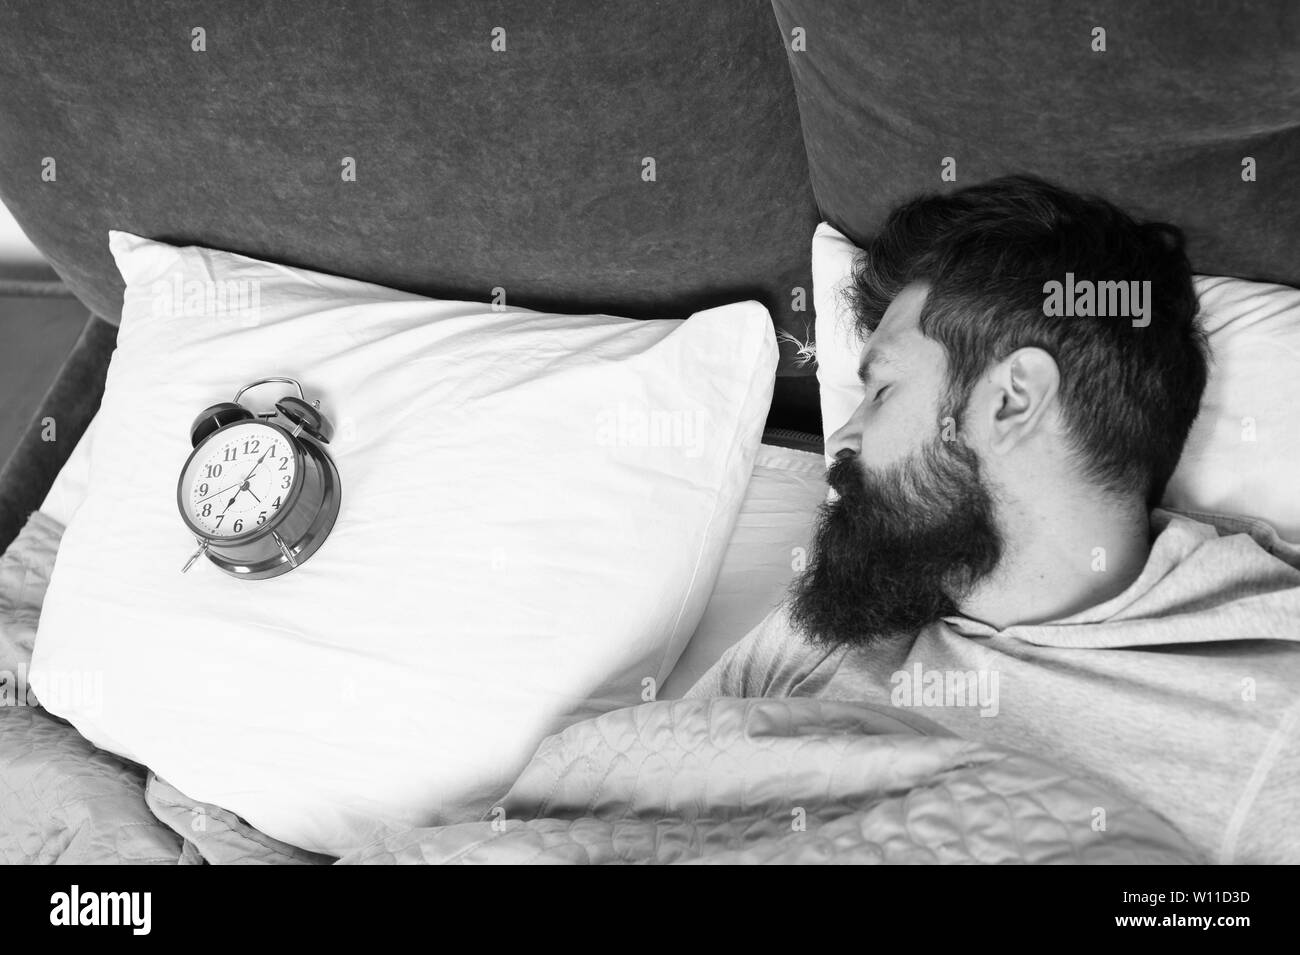 Man bearded hipster sleepy face in bed with alarm clock. Problem with early morning awakening. Get up with alarm clock. Overslept again. Tips for waking up early. Tips for becoming an early riser. - Stock Image